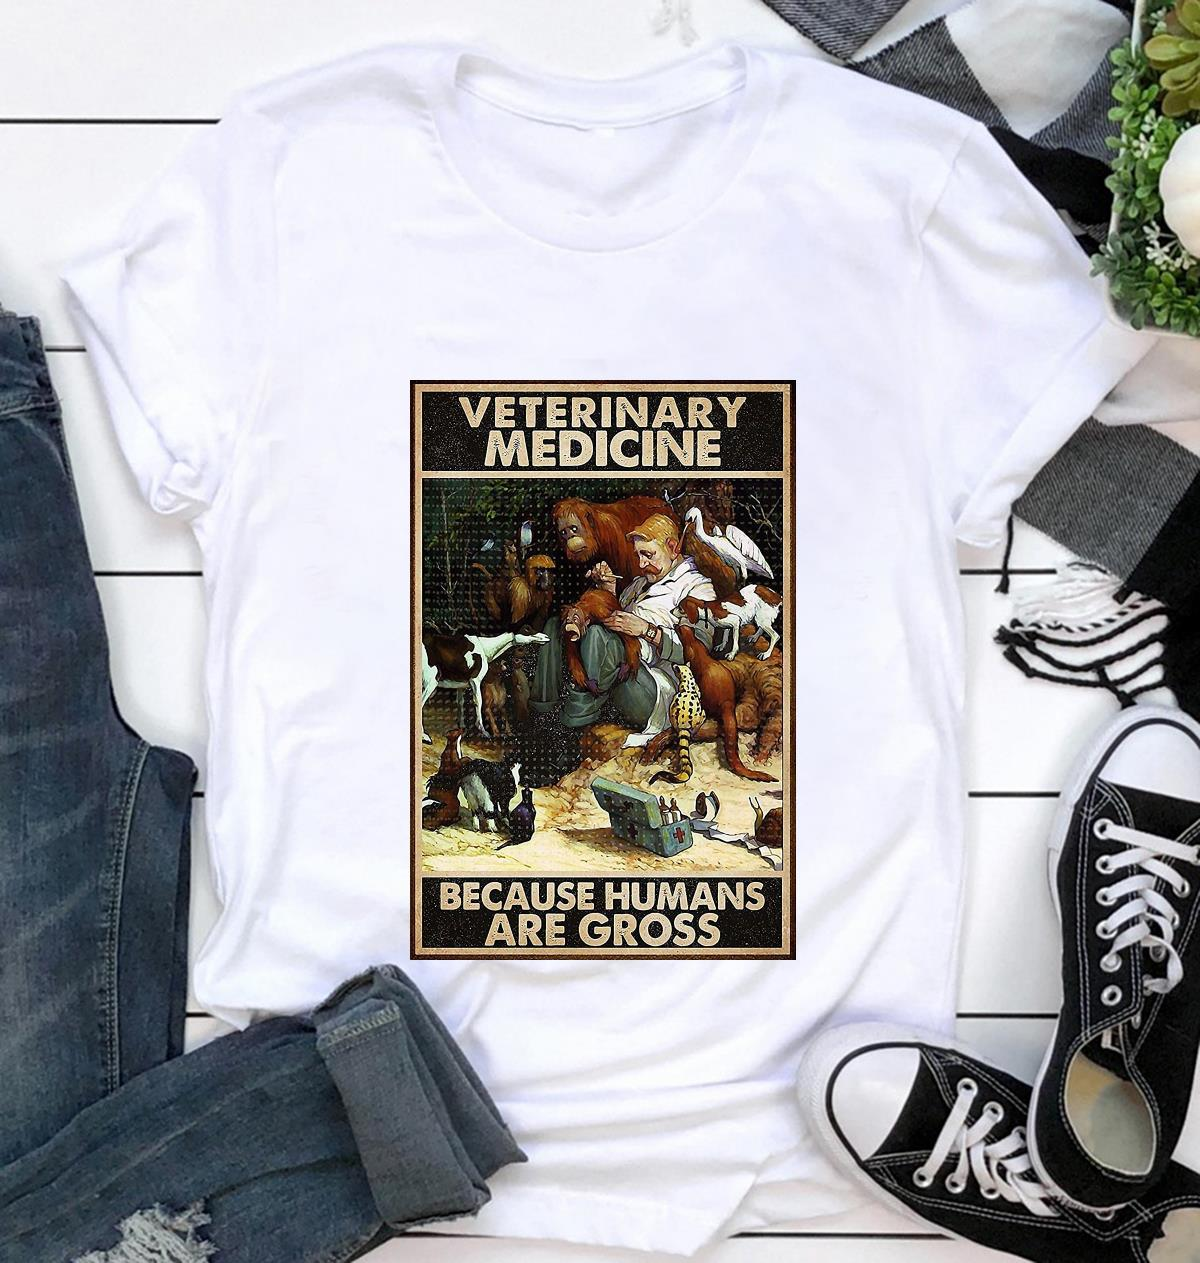 Veterinary medicine because humans are gross poster canvas t-shirt